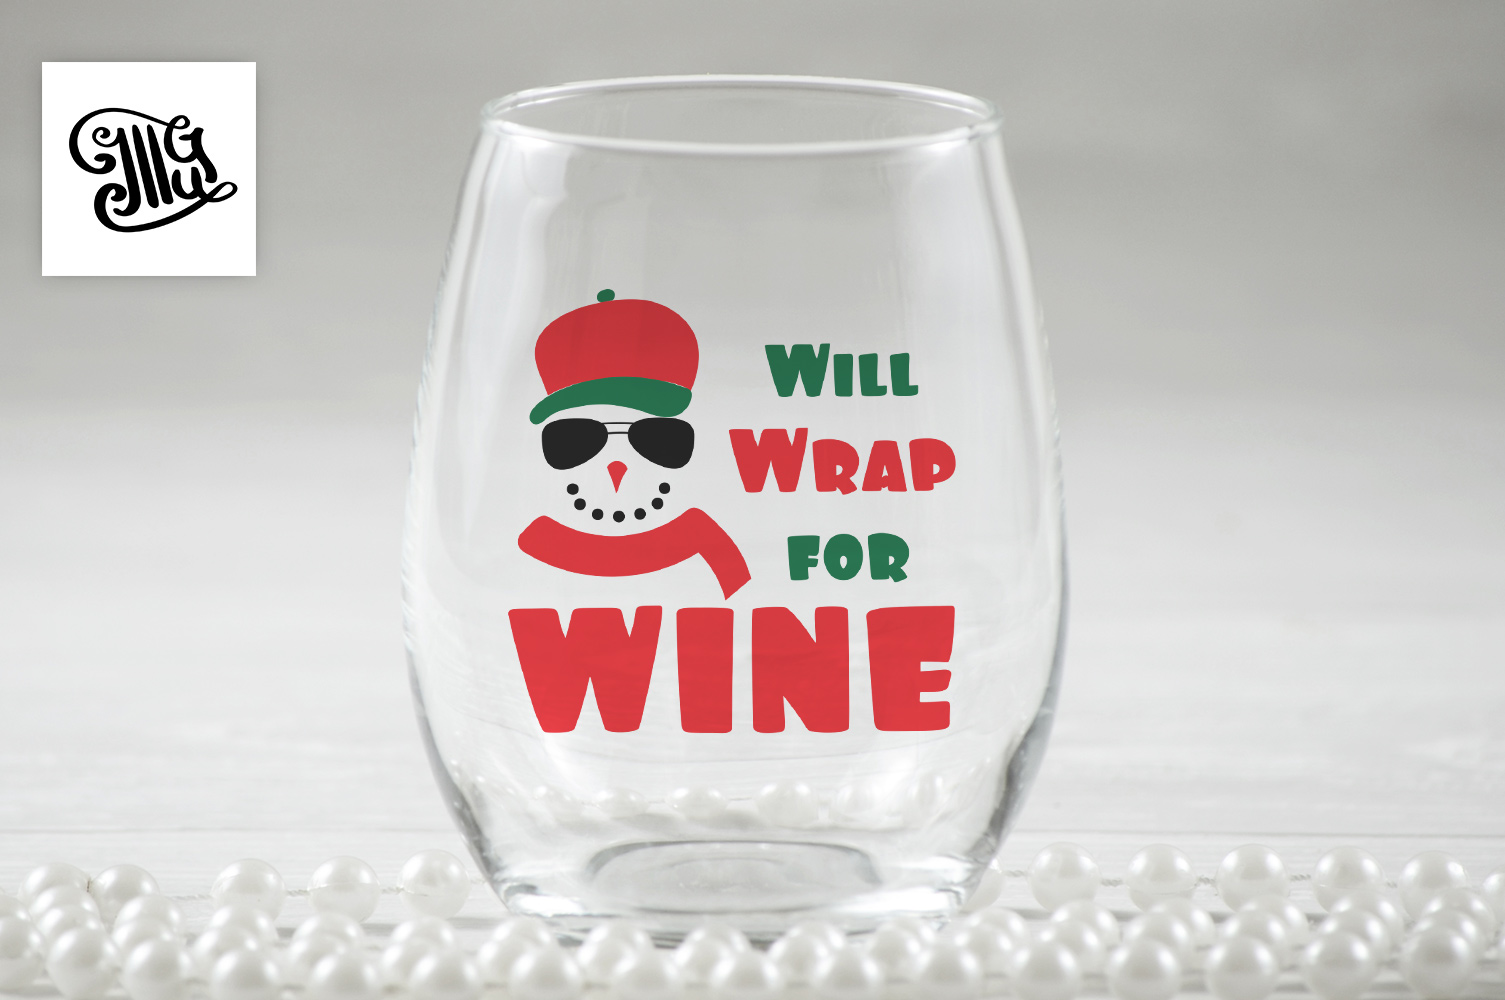 Will Wrap for wine - Christmas wine example image 1